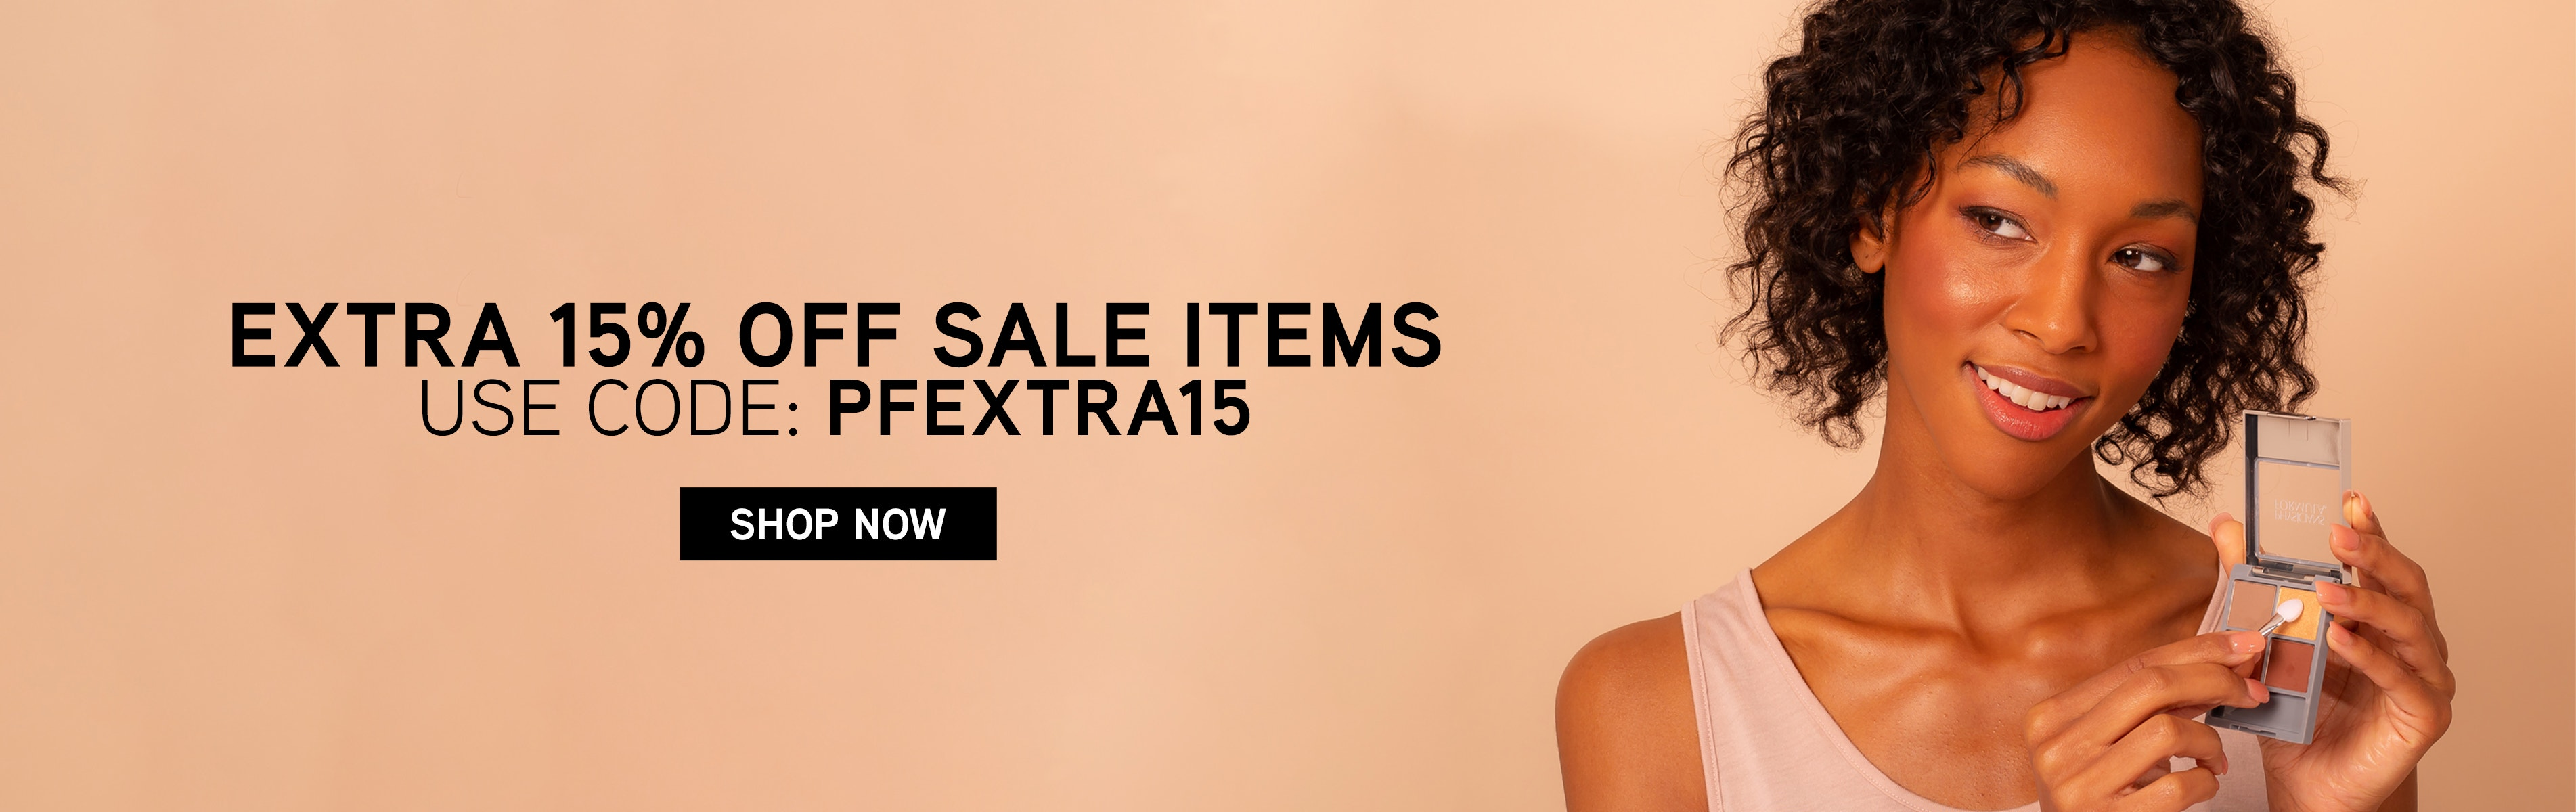 Physicians Formula   Extra 15% Off Sale Items   USE CODE: PFEXTRA15  CLICK HERE TO SHOP NOW